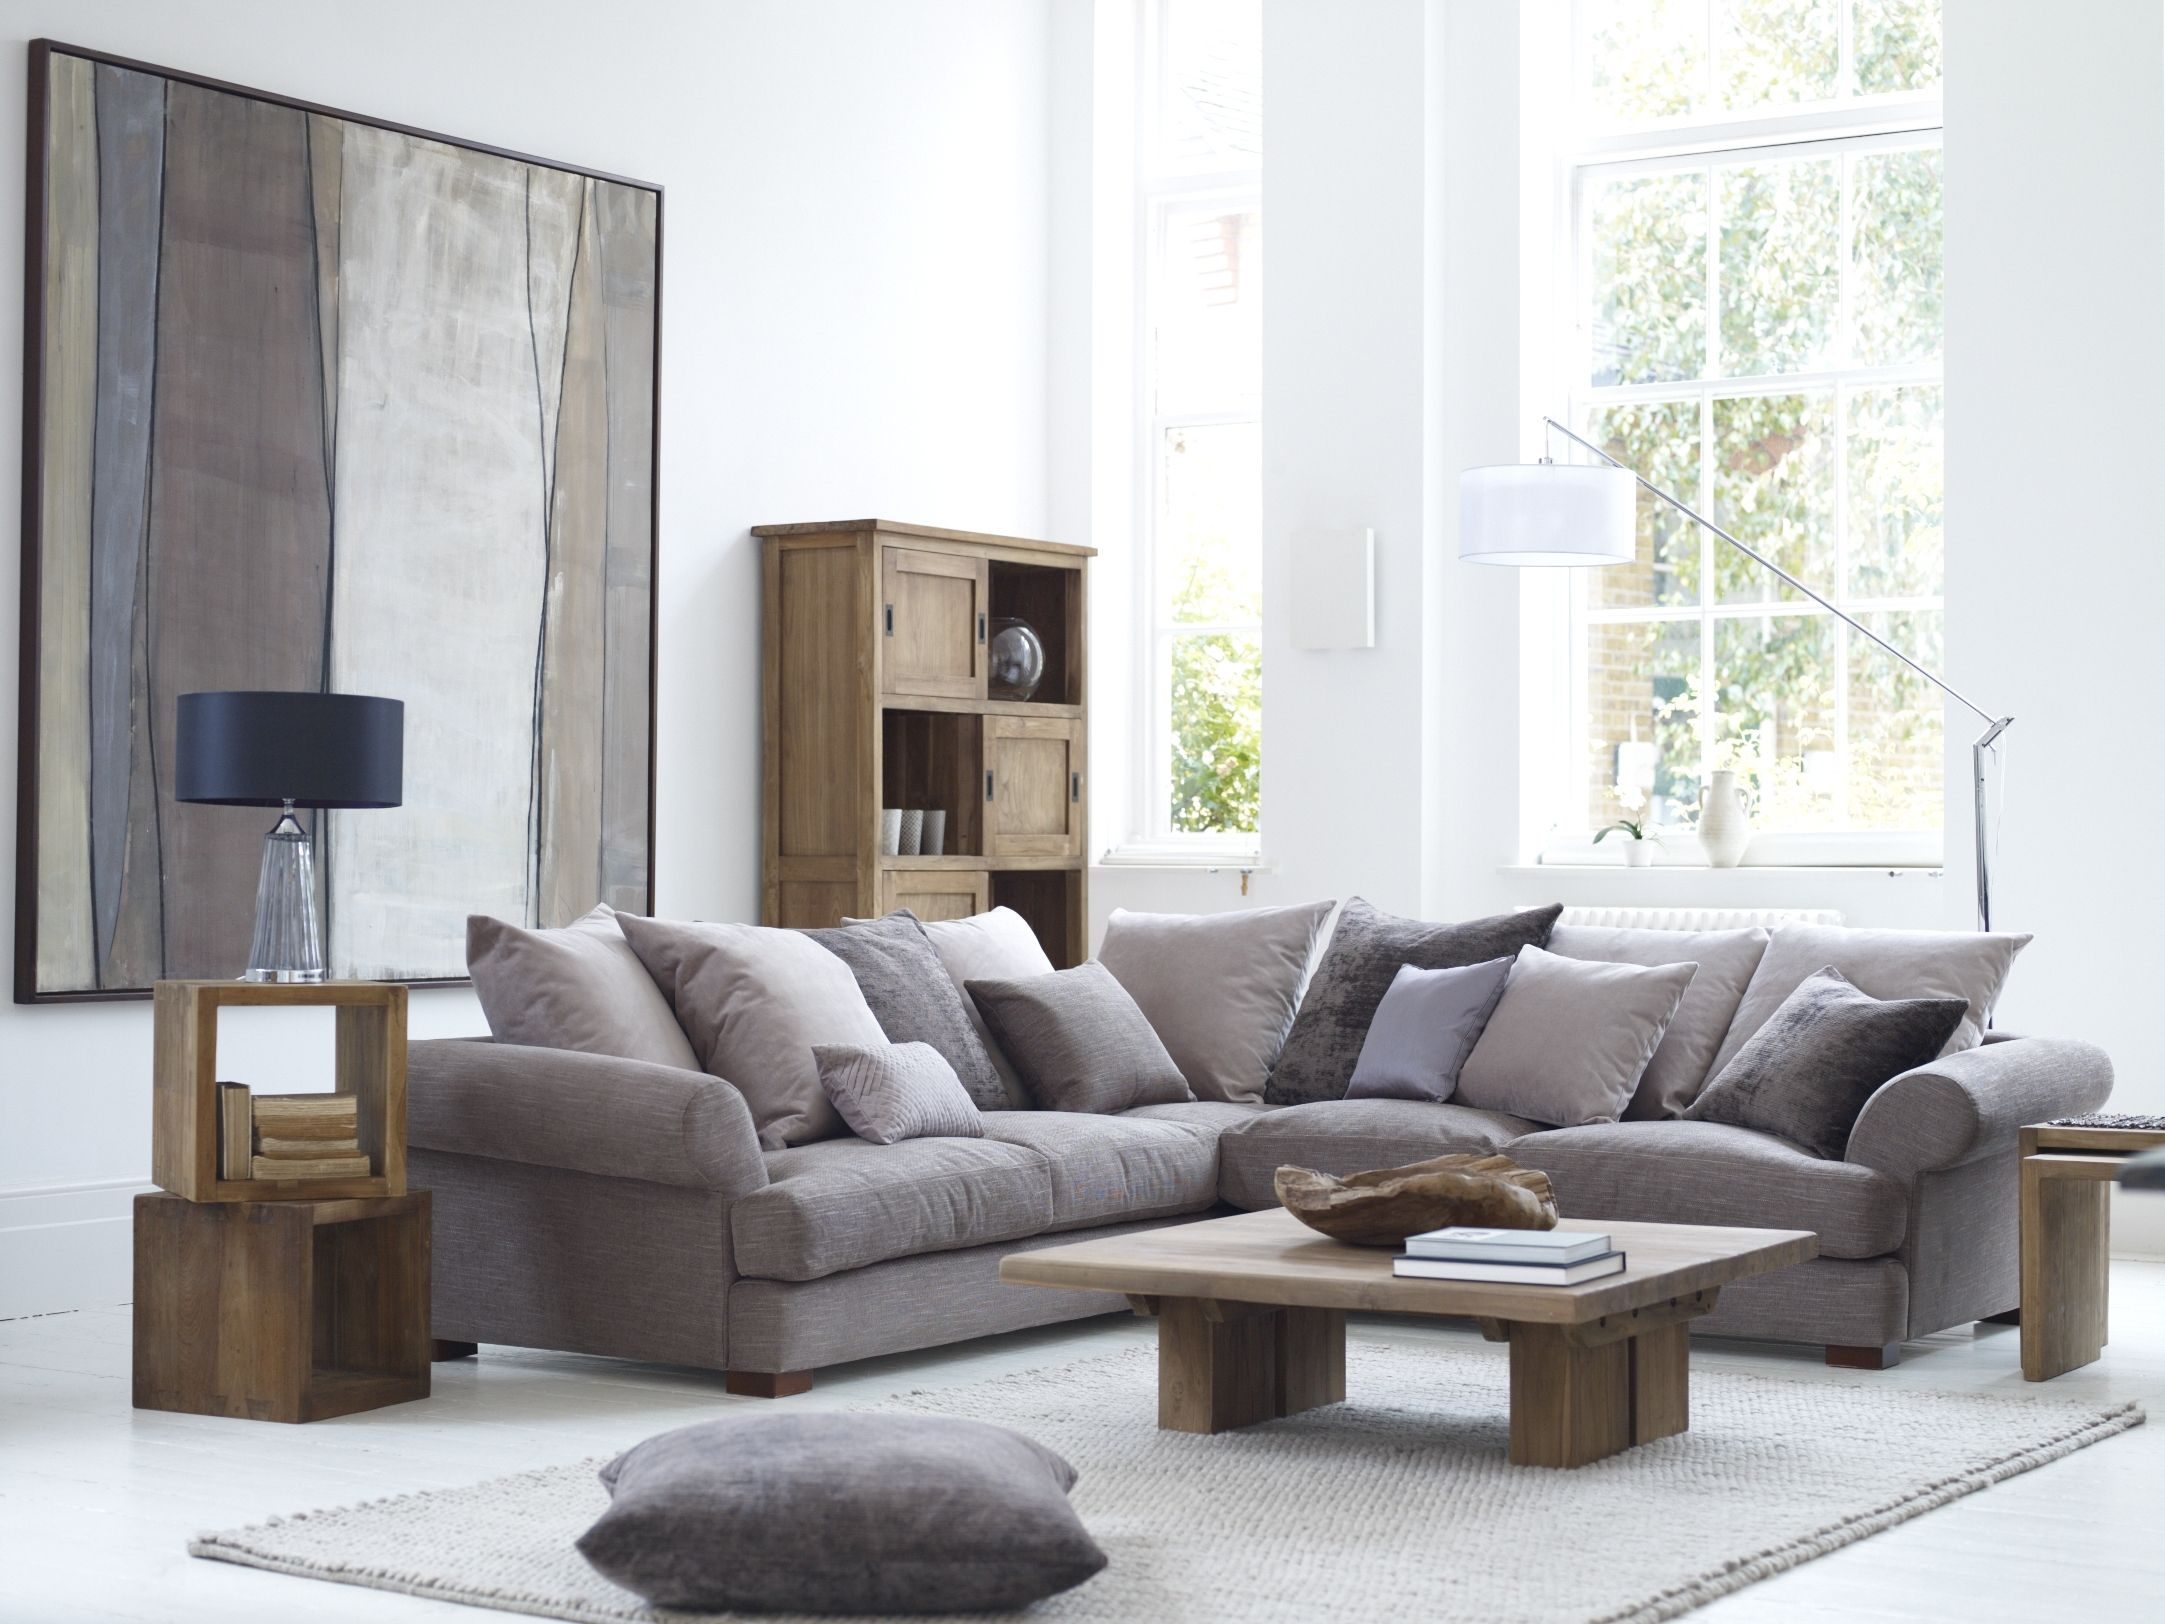 8 Types Of Corner Sofas To Save Your Living Room Space   Corner Sofas   Do  You Intend To Purchase A Corner Sofa? Do You Know What Your Living Room  Need ...